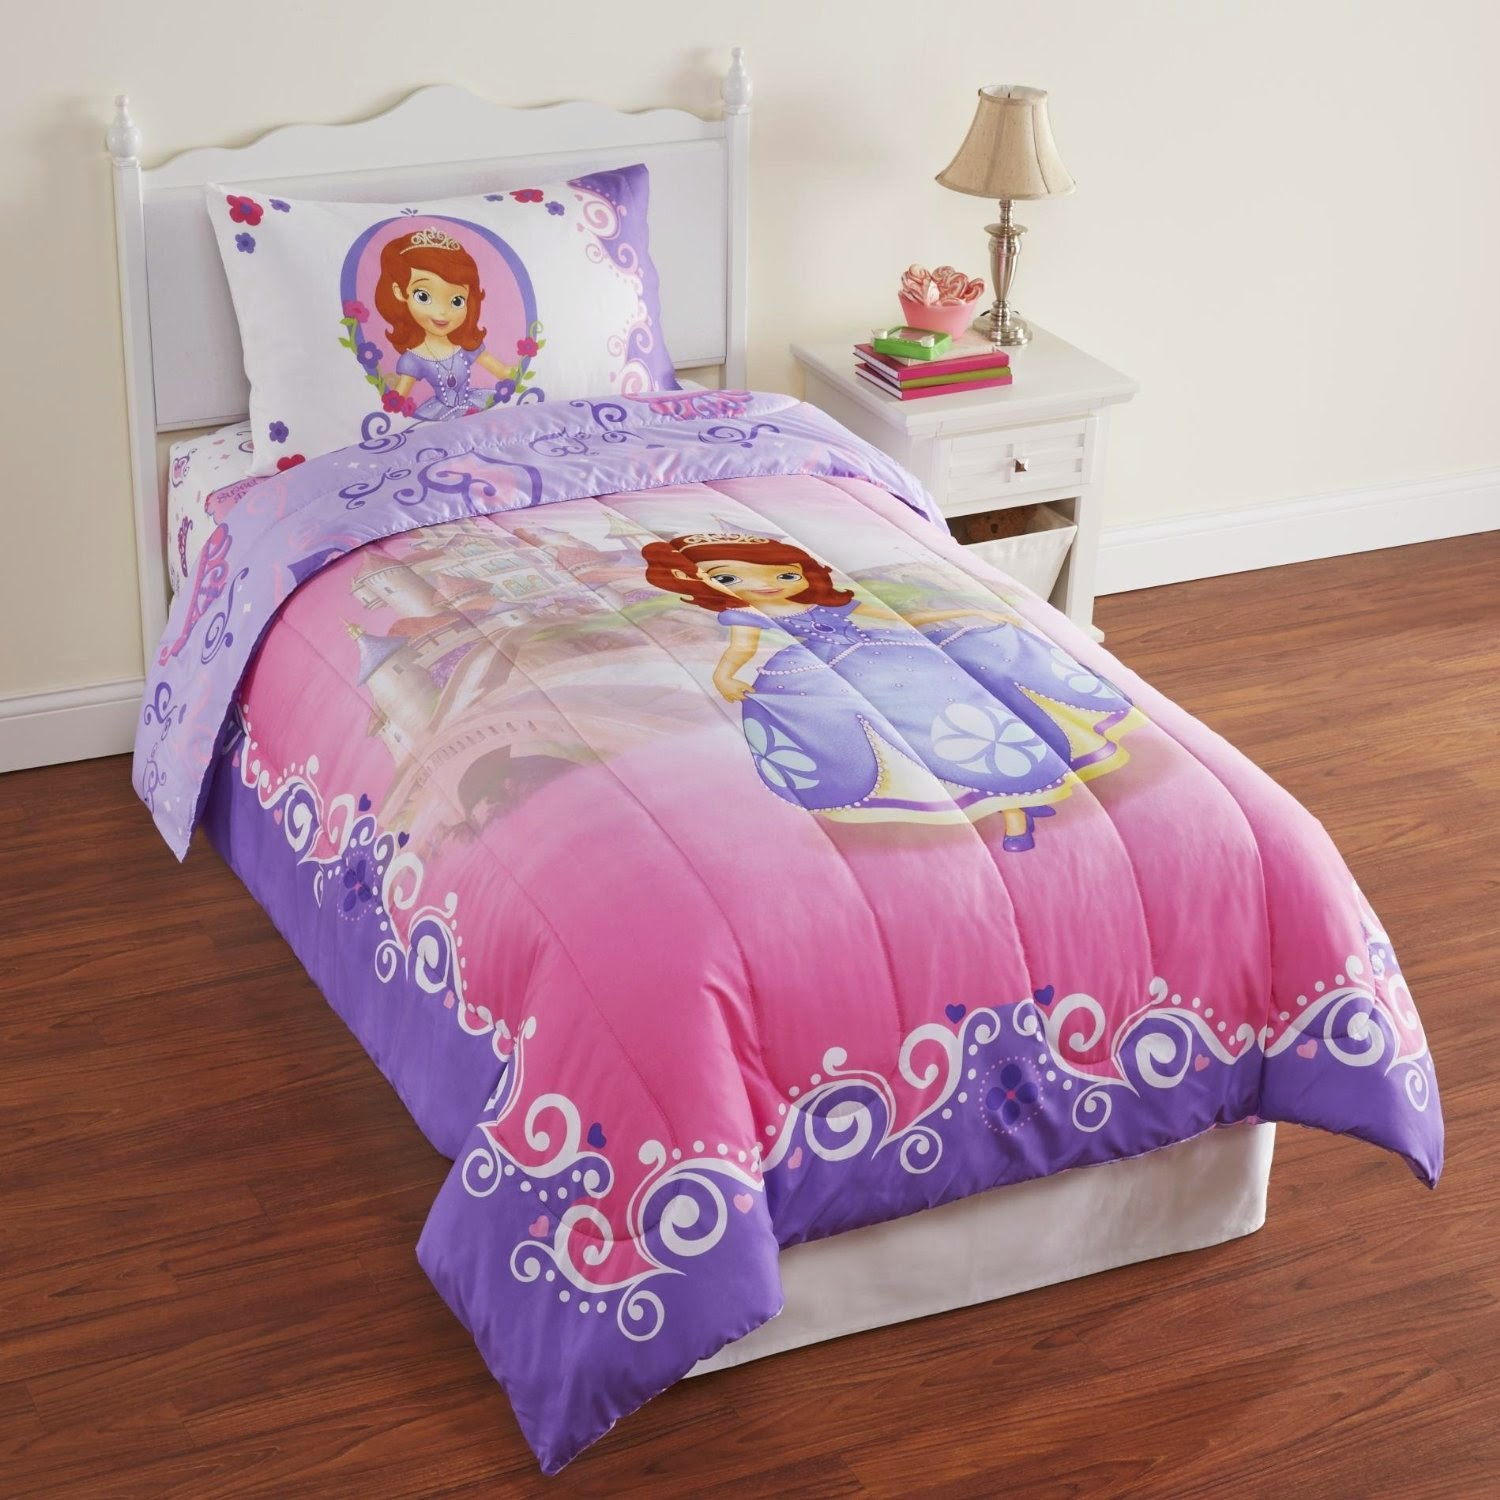 Bedroom Decor Ideas and Designs: Top Eight Princess Sofia the ...